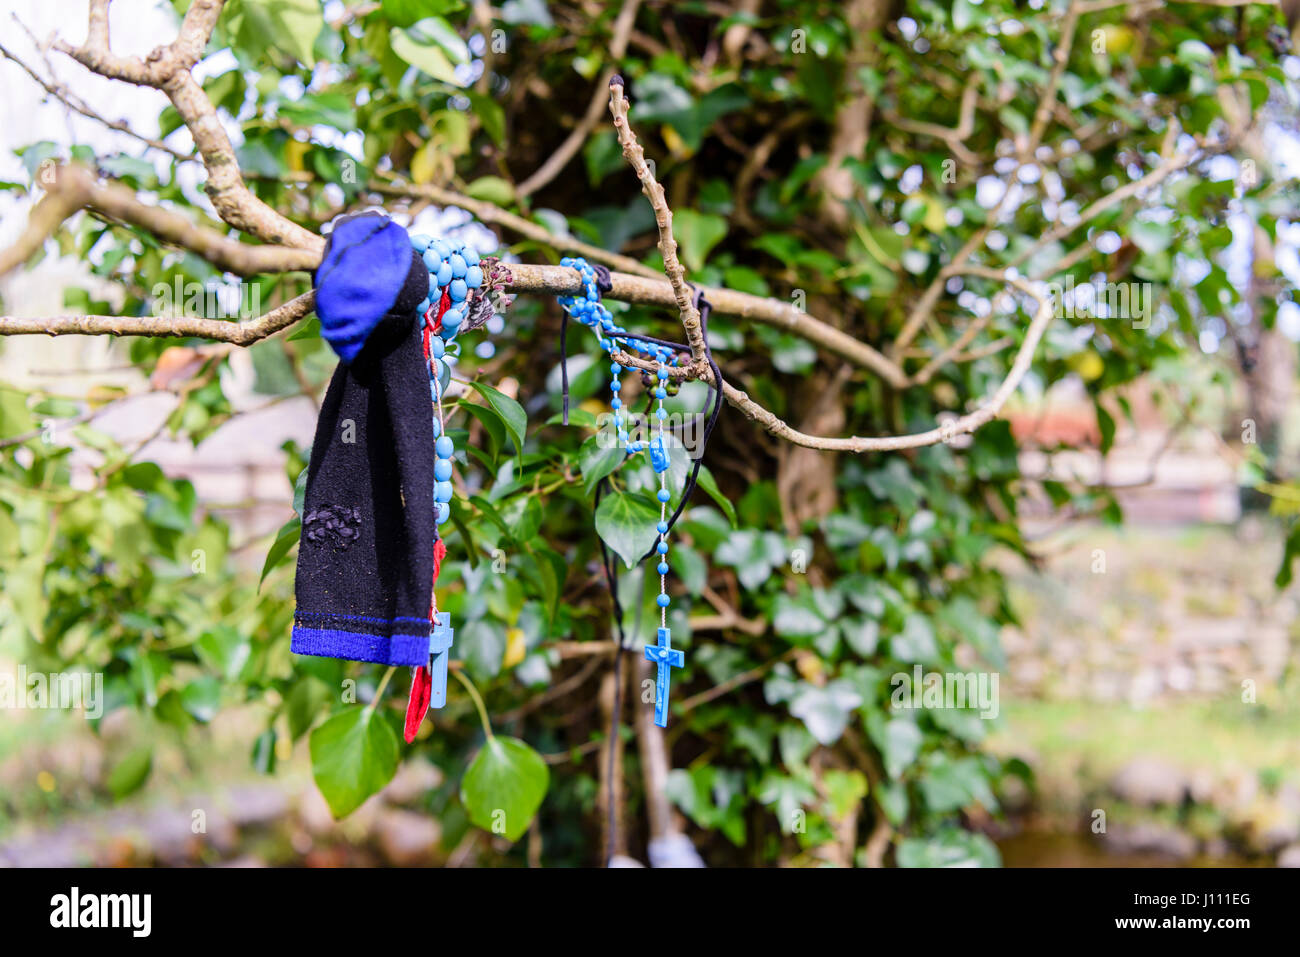 Rosary beads and a sock tied to a tree at an Irish holy well shrine. - Stock Image